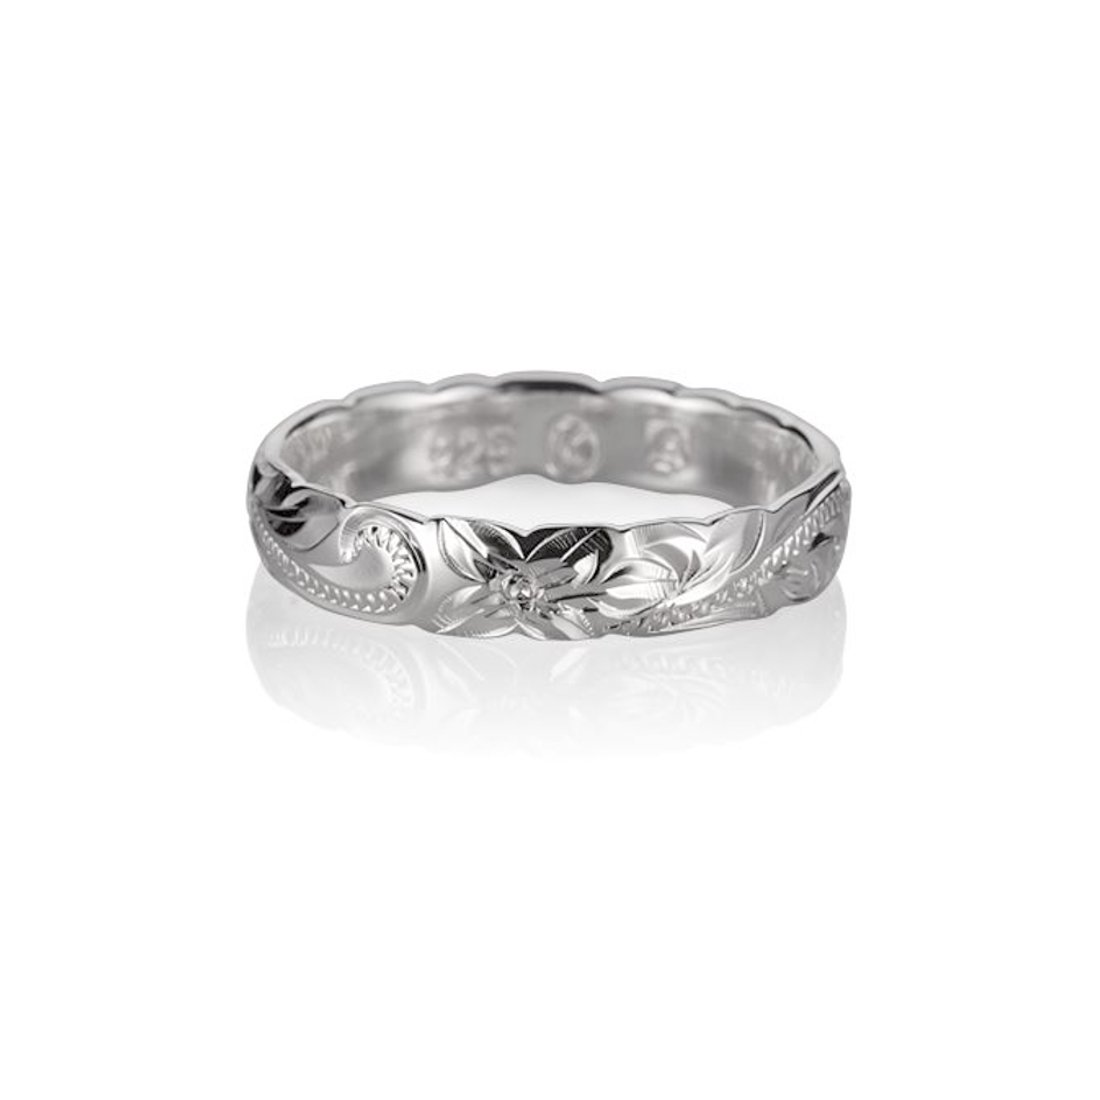 Size 8 Sterling Silver 925 Hawaiian Princess Scroll Cut Out Edge Promise Ring